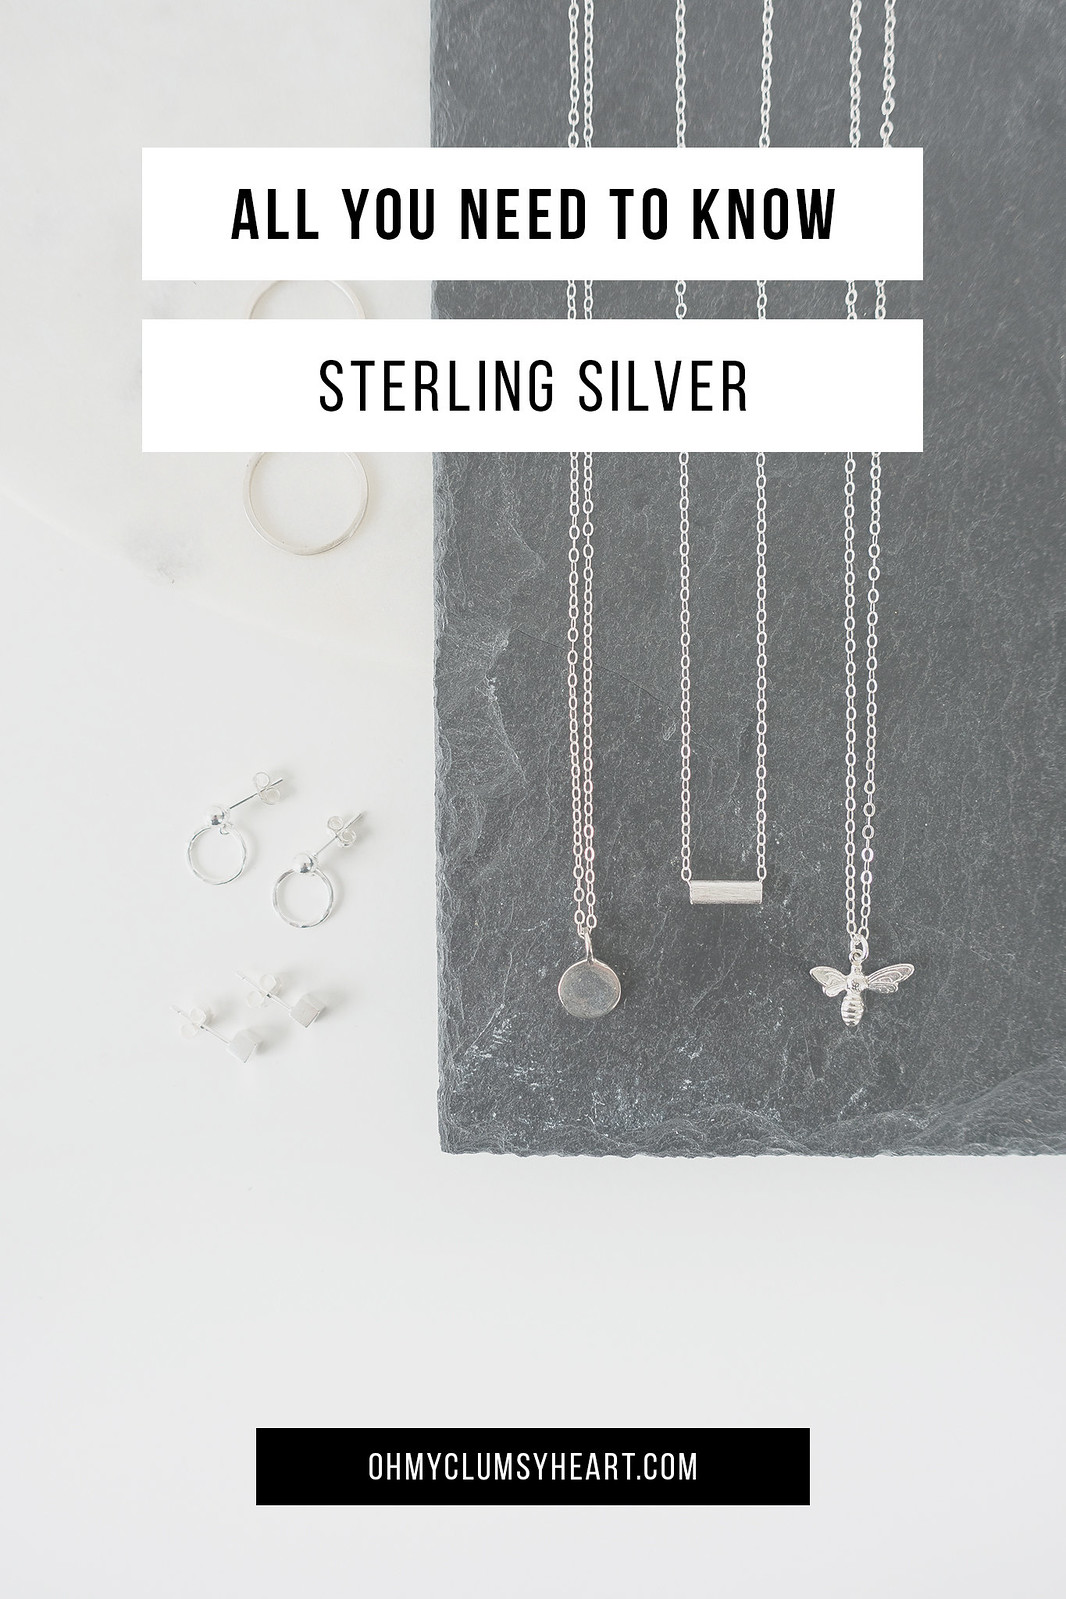 All You Need To Know: Silver Jewellery